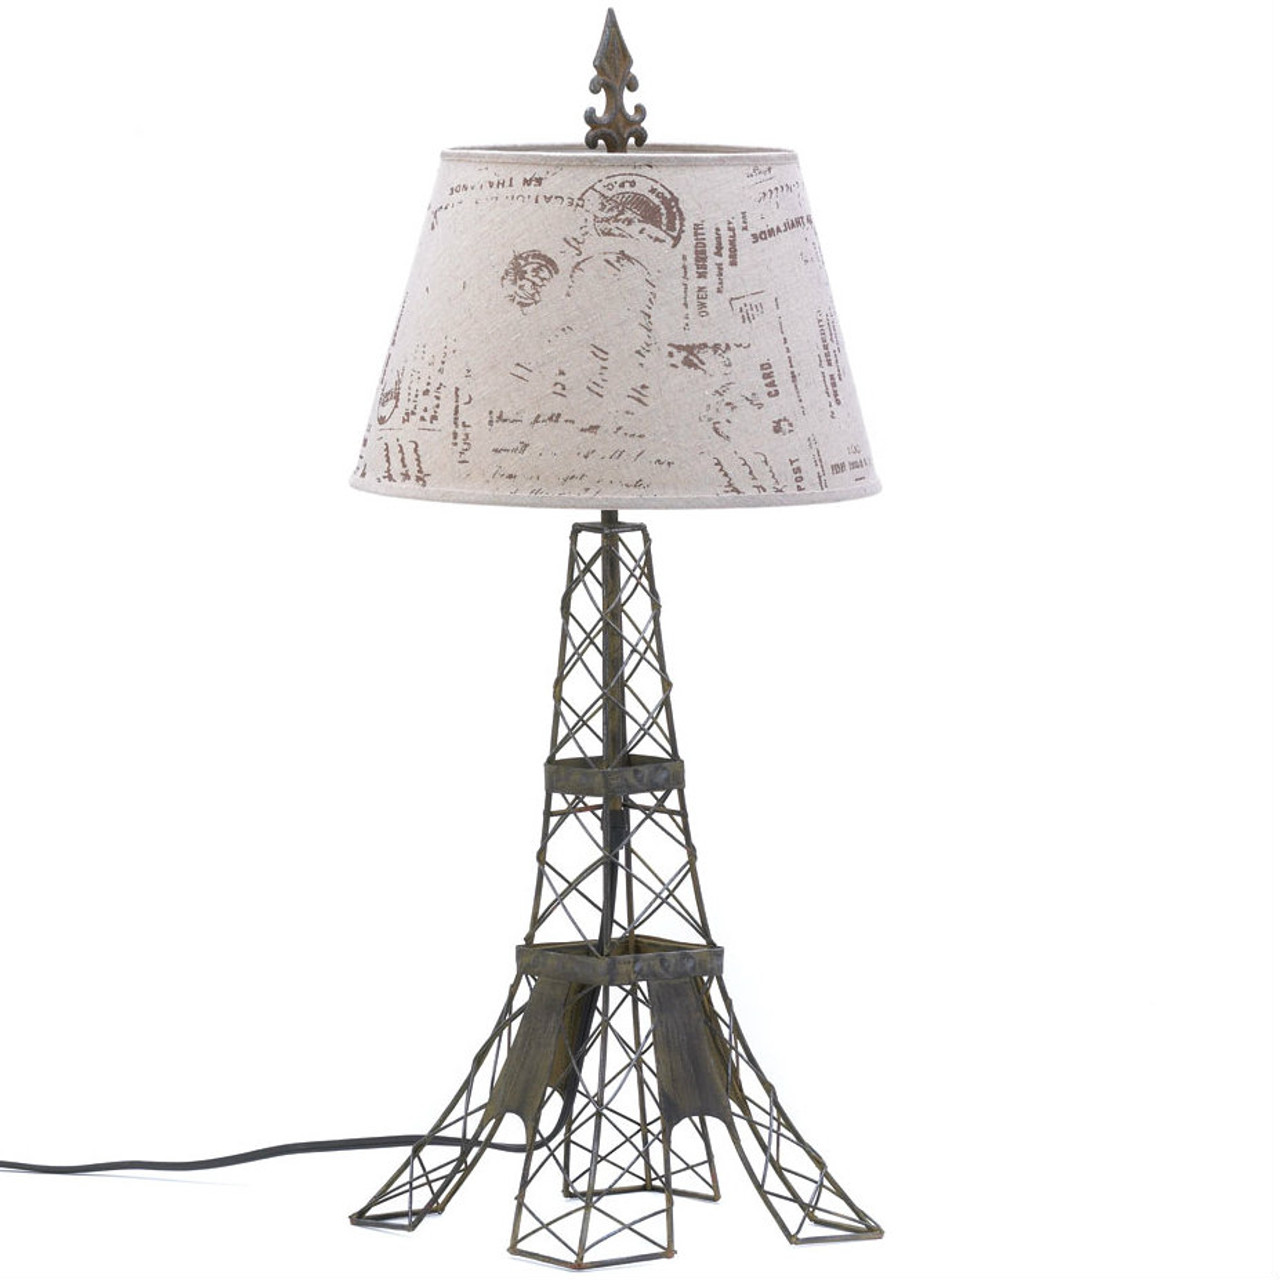 Eiffel tower wire frame table lamp aewholesale eiffel tower wire frame table lamp keyboard keysfo Image collections